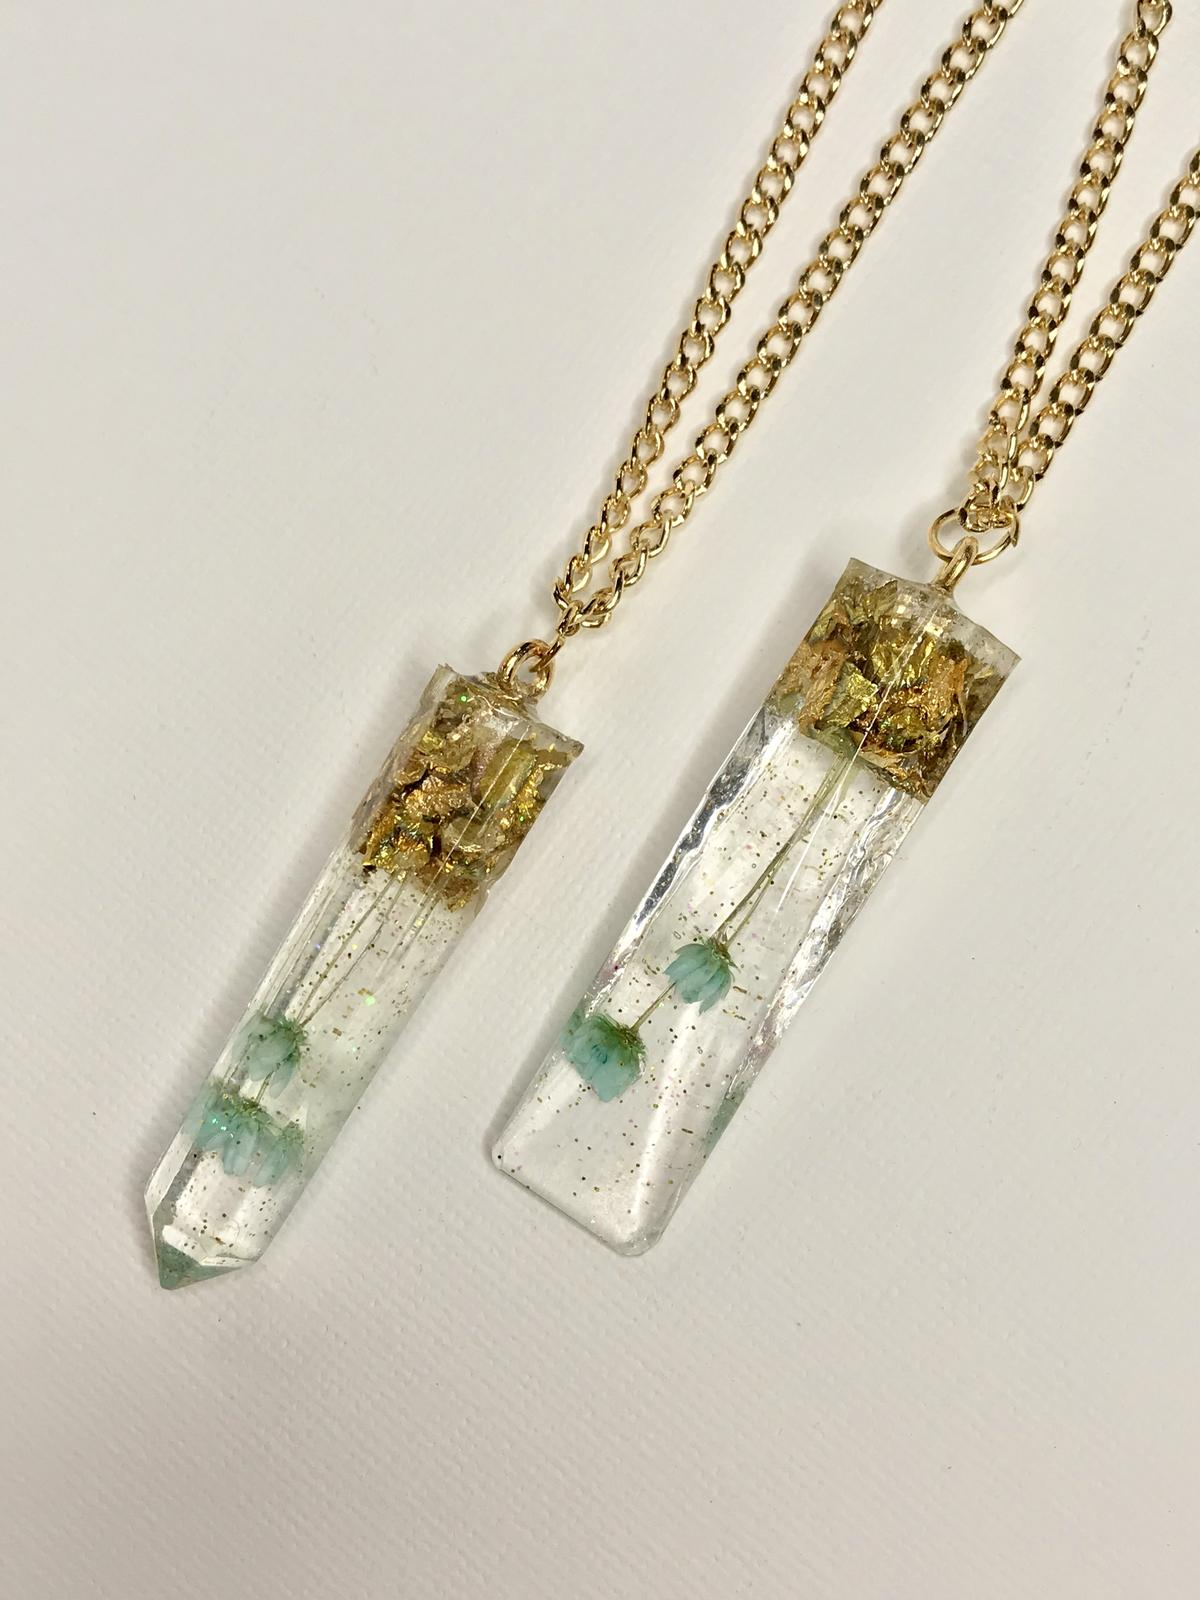 Dried flower crystal necklaces